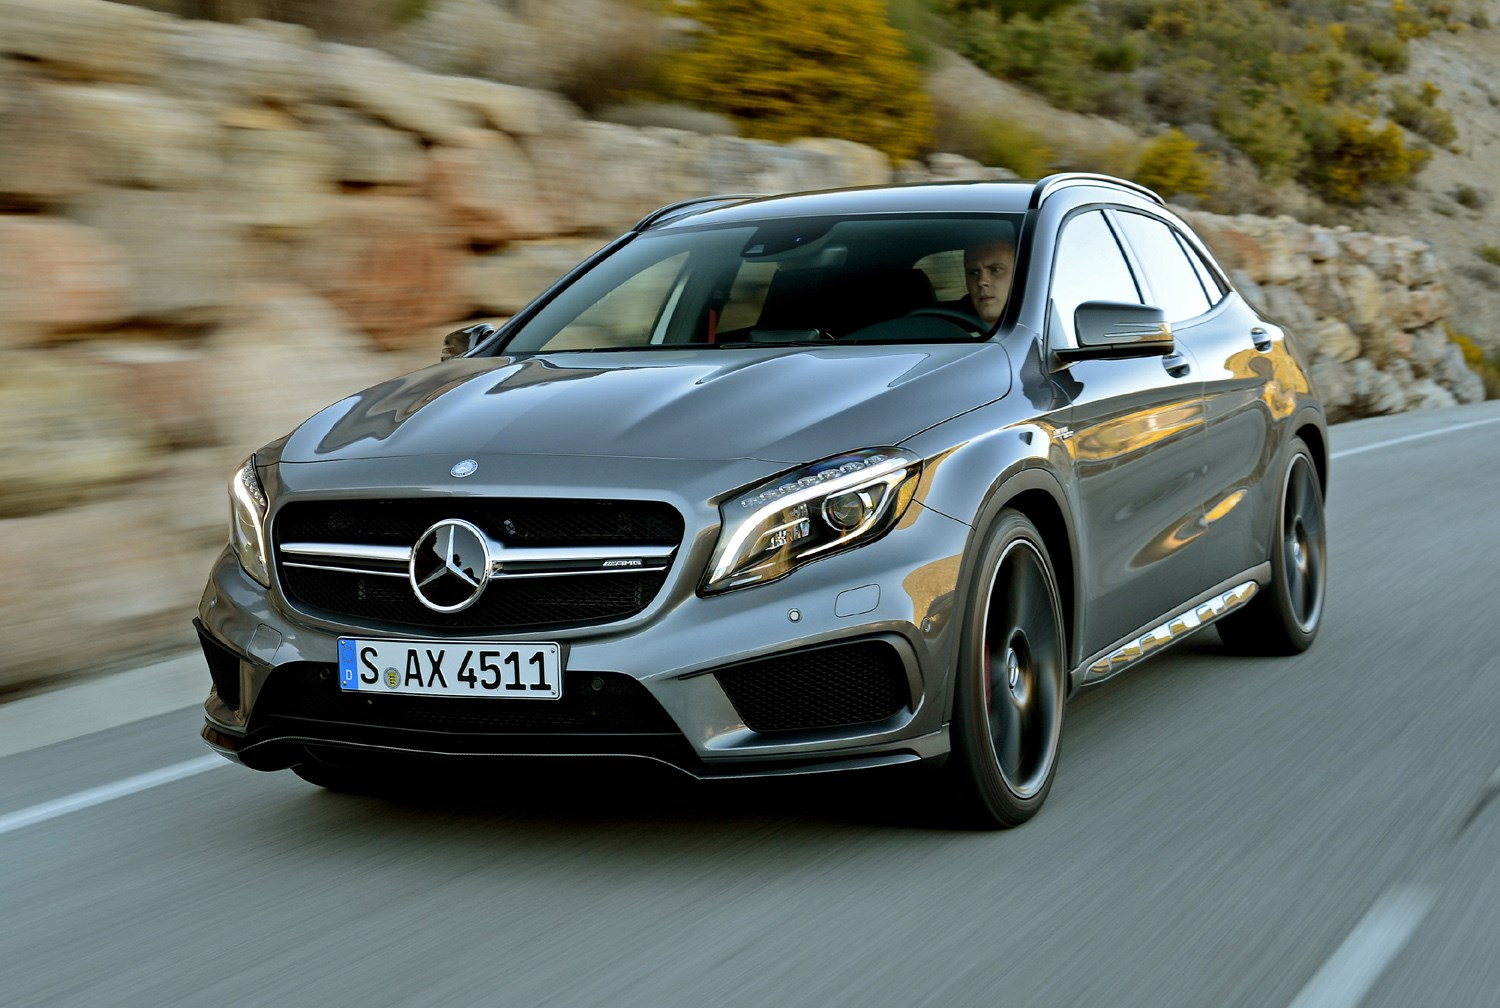 mercedes benz gla class amg 2014 2017 photos parkers. Black Bedroom Furniture Sets. Home Design Ideas